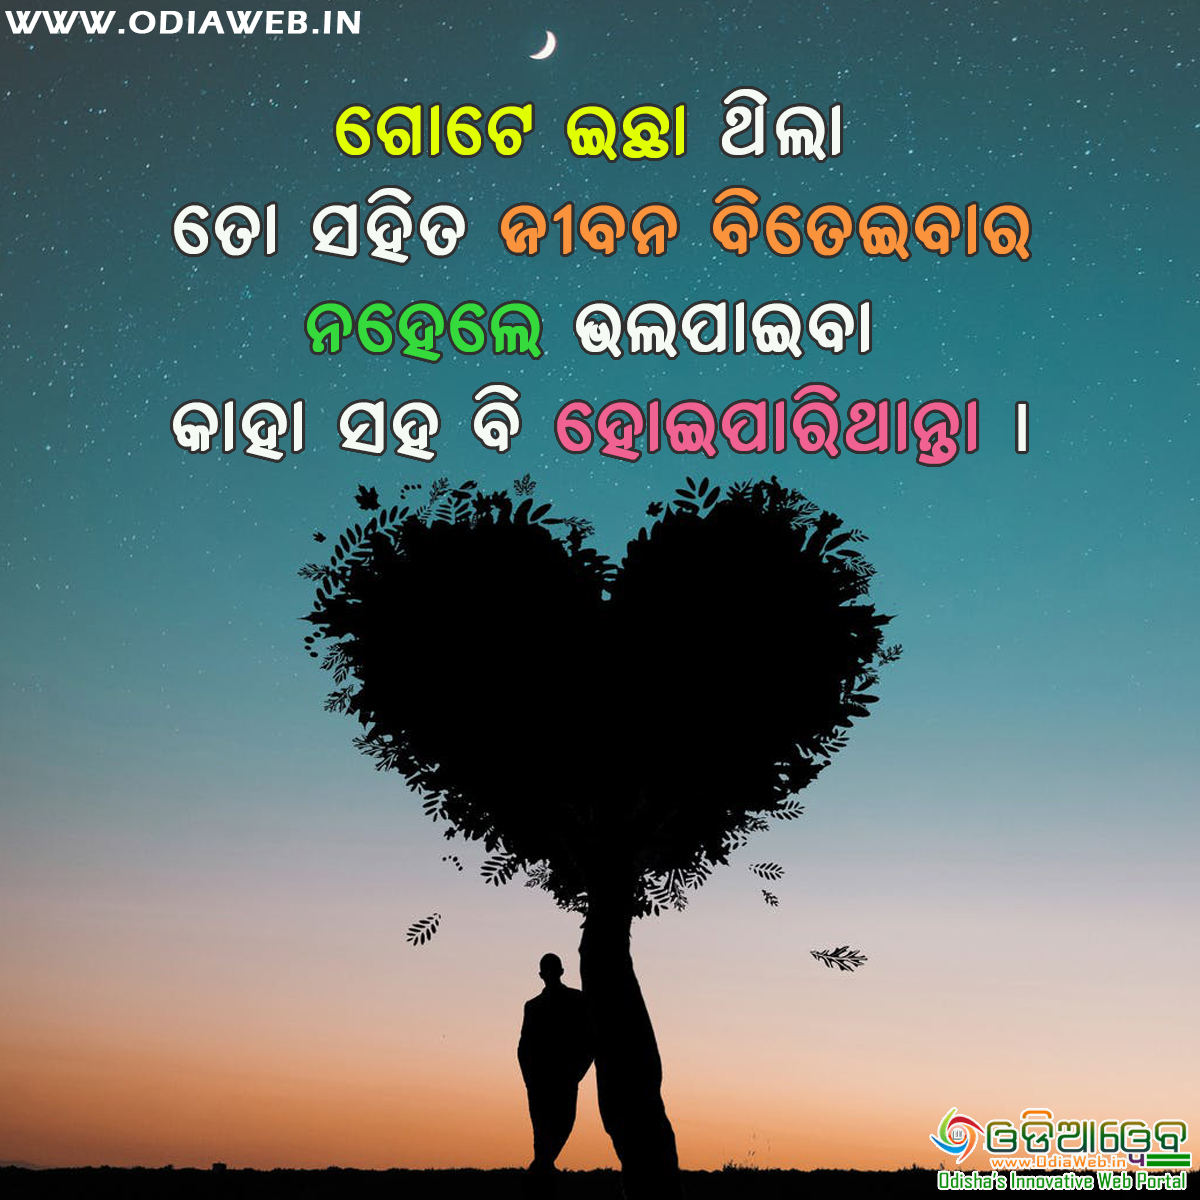 Odia sad love shayari